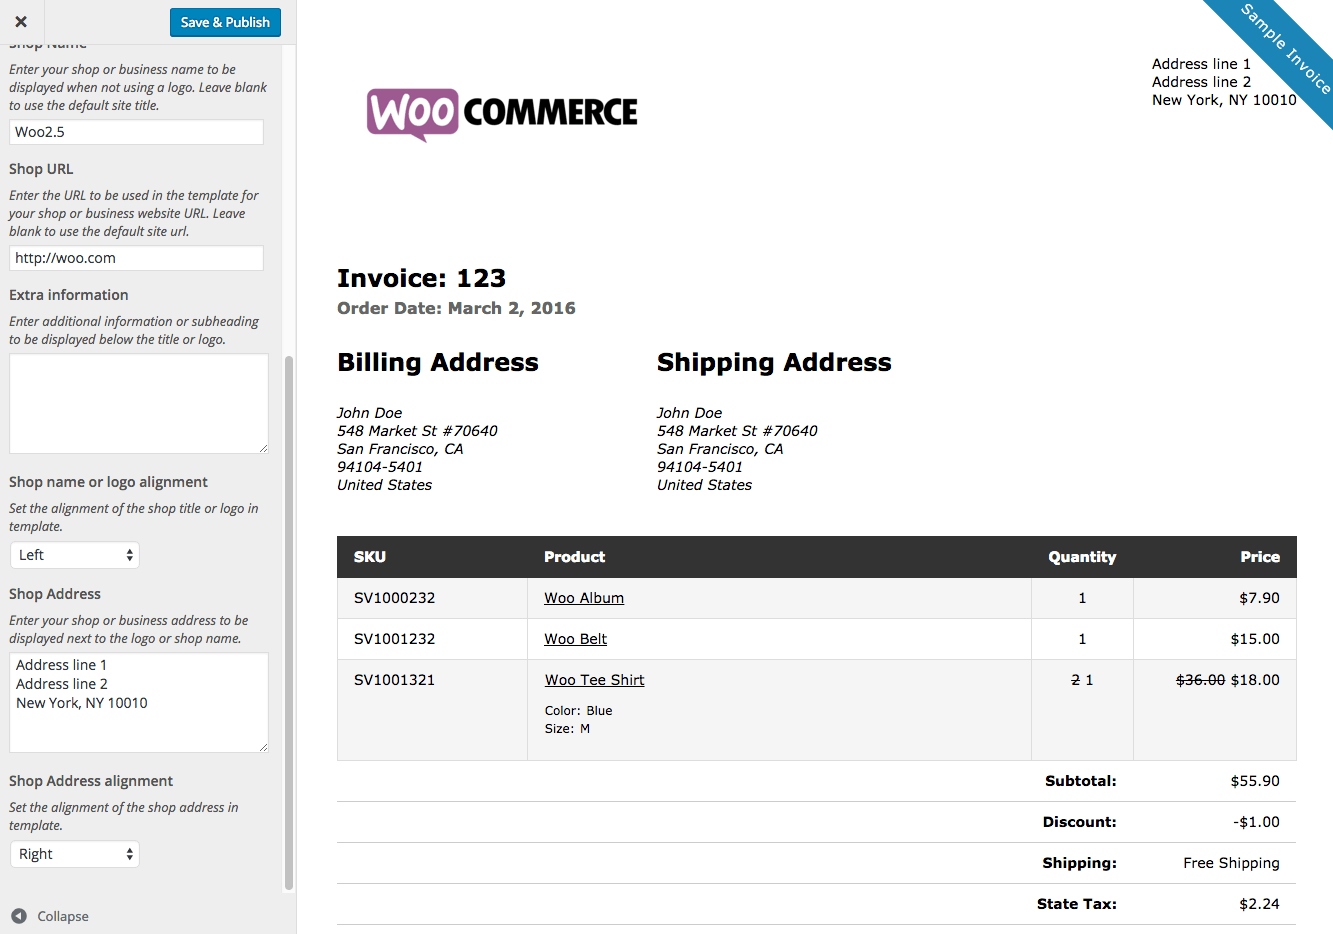 Modaoxus  Prepossessing Woocommerce Print Invoices Amp Packing Lists  Woocommerce Docs With Heavenly Woocommerce Print Invoices  Packing Lists Customizer With Breathtaking Free Invoice Samples Also How Do You Create An Invoice In Addition Excel  Invoice Template And Proform Invoice As Well As Google Docs Invoices Additionally Microsoft Invoice Software From Docswoocommercecom With Modaoxus  Heavenly Woocommerce Print Invoices Amp Packing Lists  Woocommerce Docs With Breathtaking Woocommerce Print Invoices  Packing Lists Customizer And Prepossessing Free Invoice Samples Also How Do You Create An Invoice In Addition Excel  Invoice Template From Docswoocommercecom